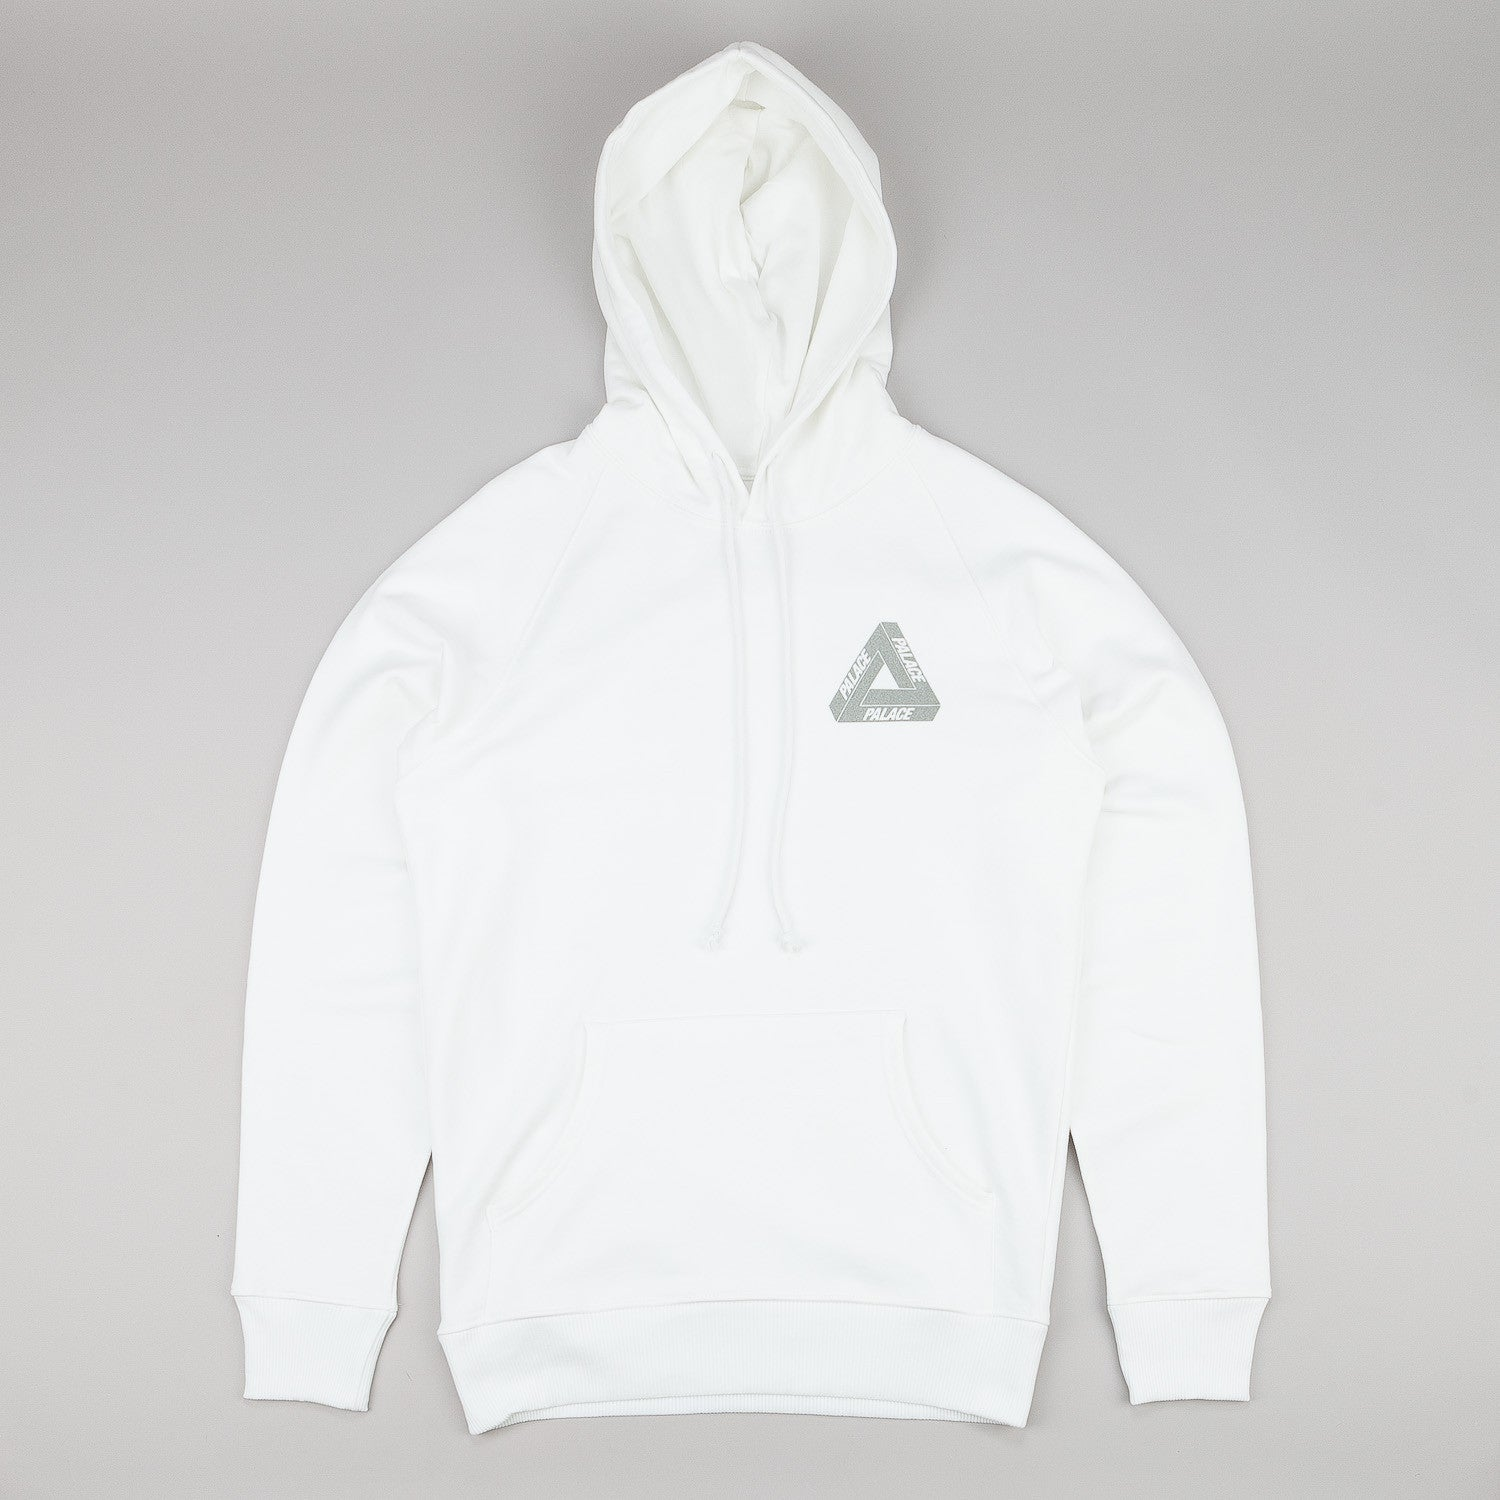 Palace 3M Hooded Sweatshirt